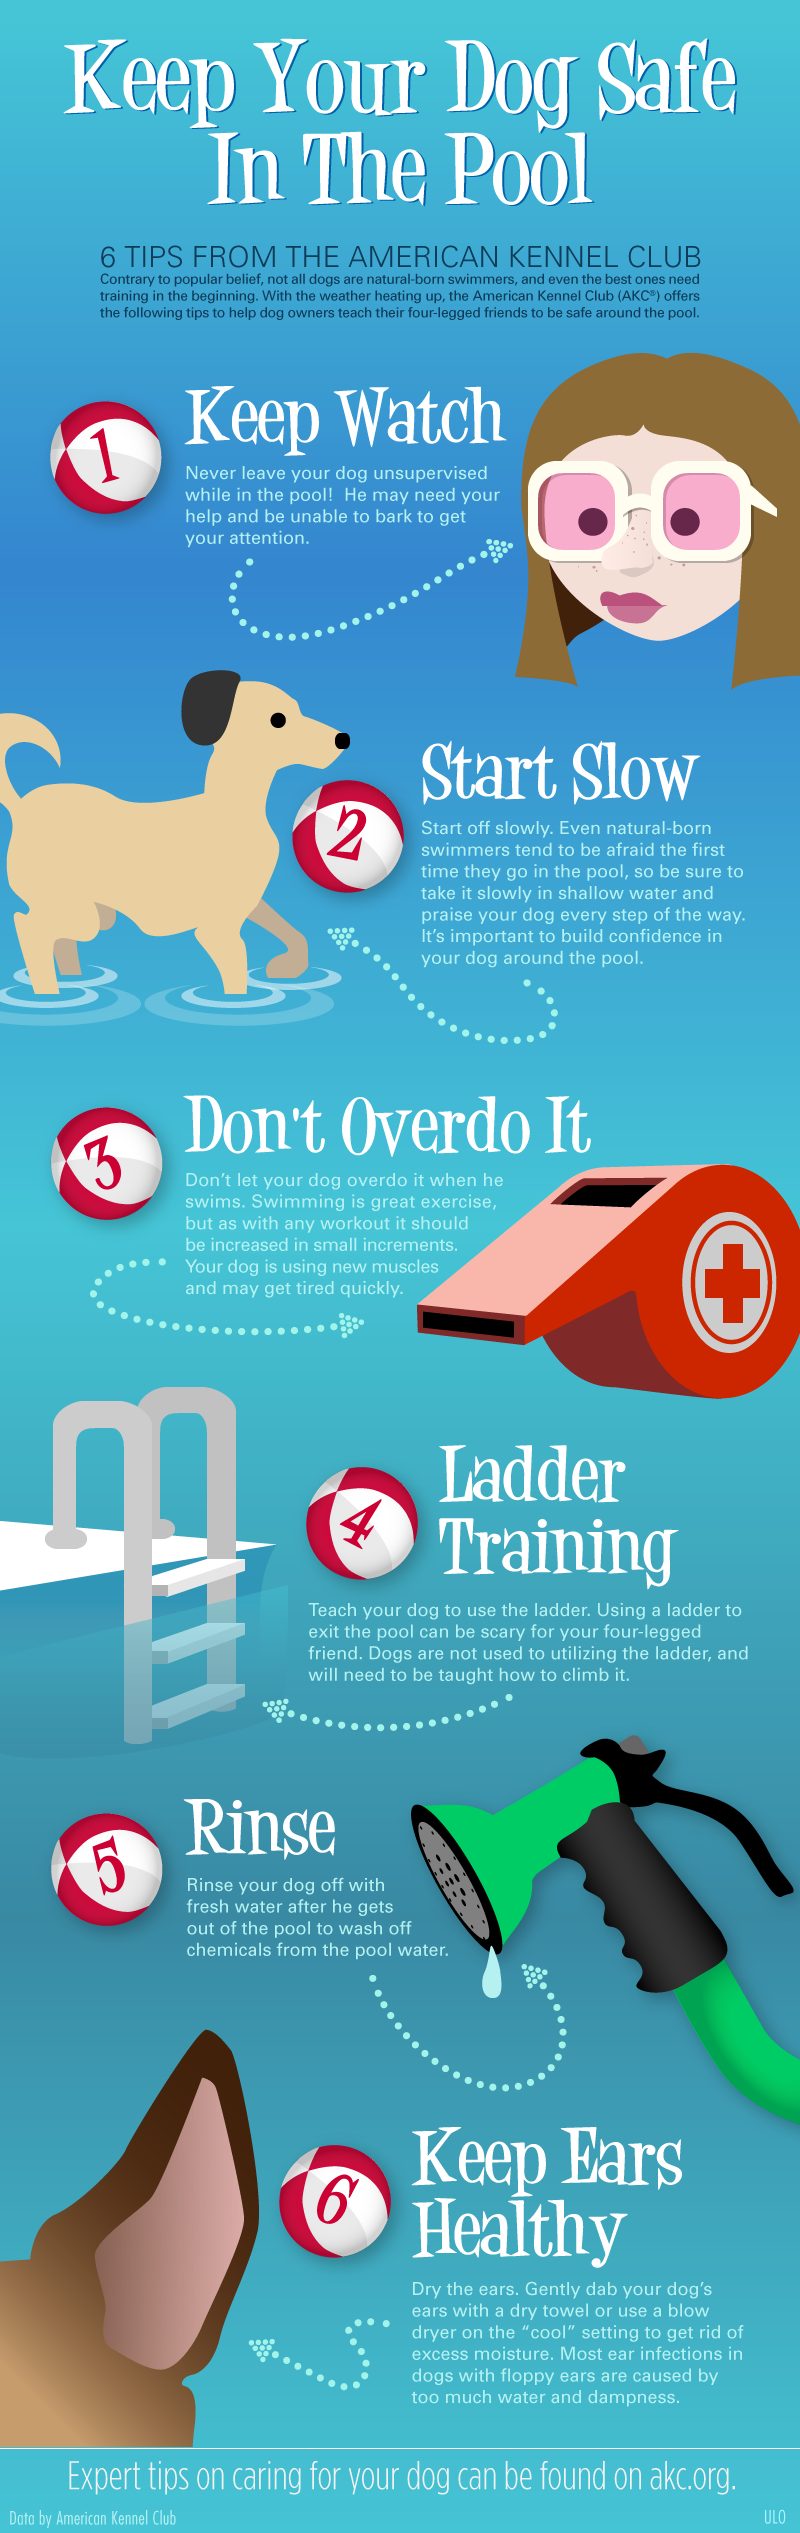 Keep Your Dog Safe in the Pool by American Kennel Club